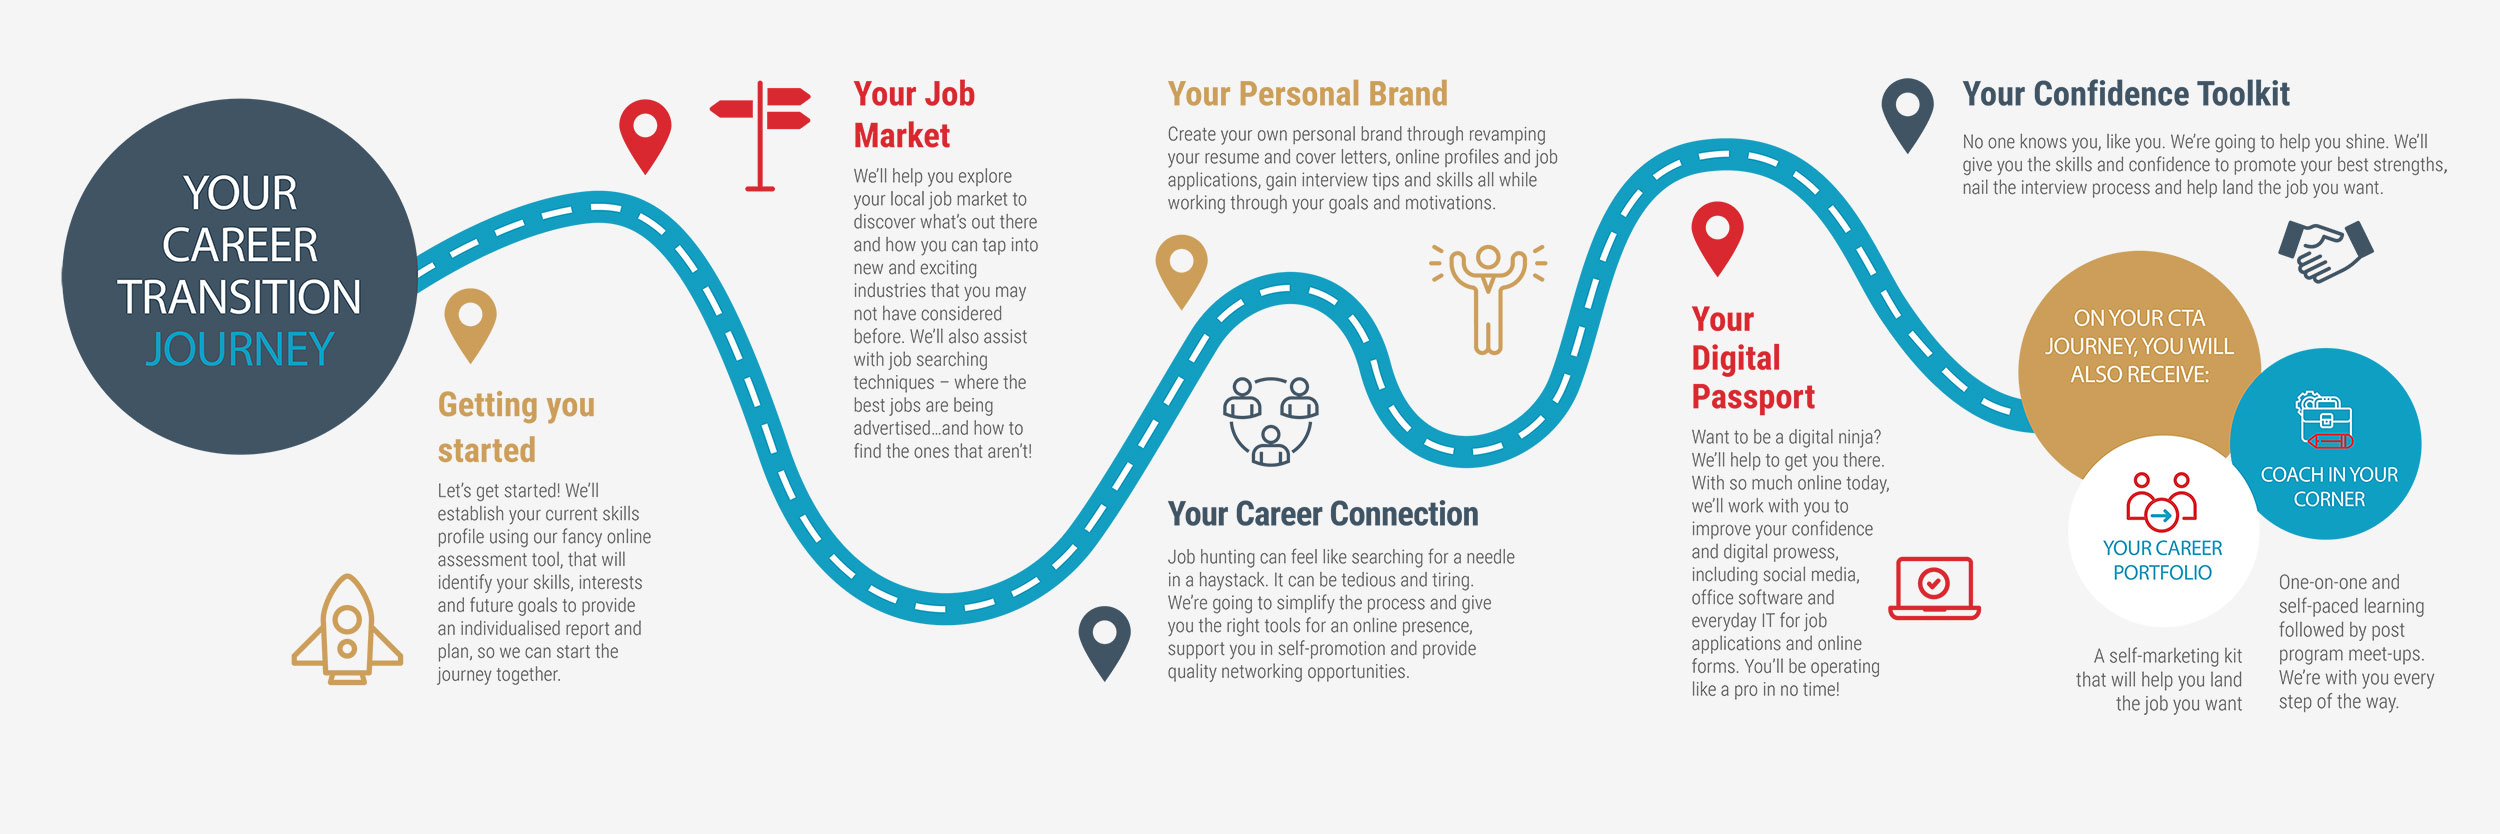 Career Transition Journey